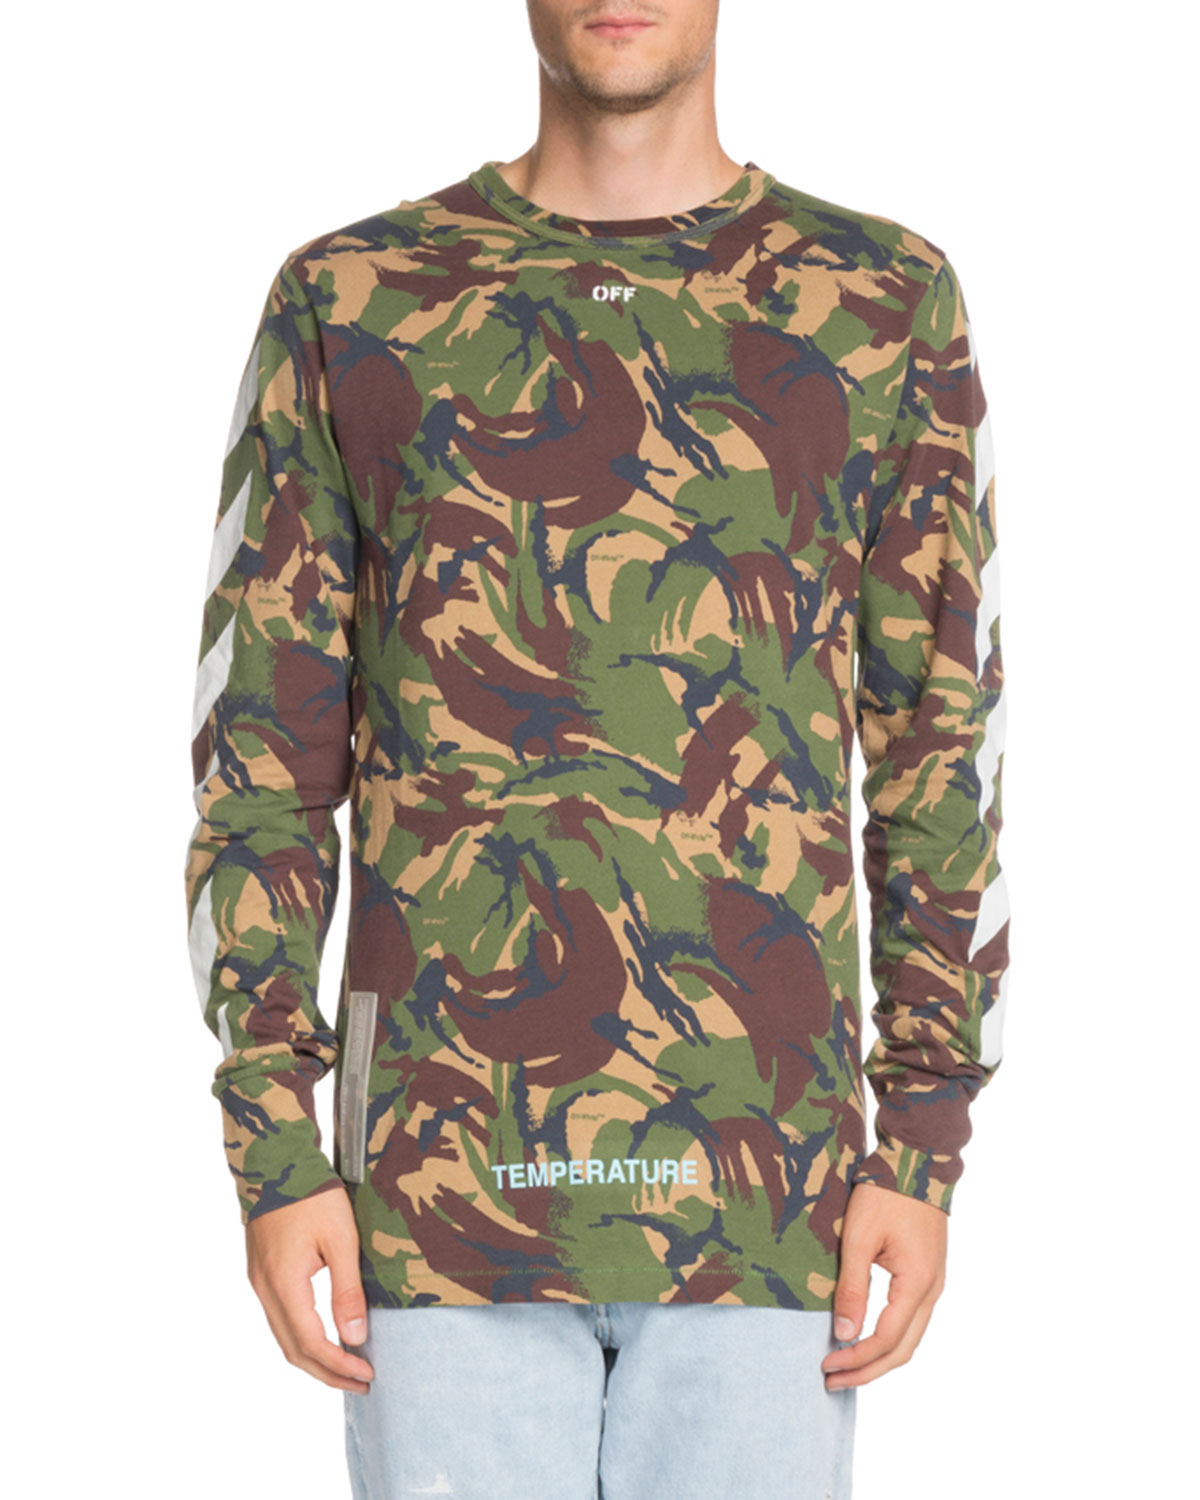 Off White Long Sleeve Camouflage Print T Shirt Neiman Marcus